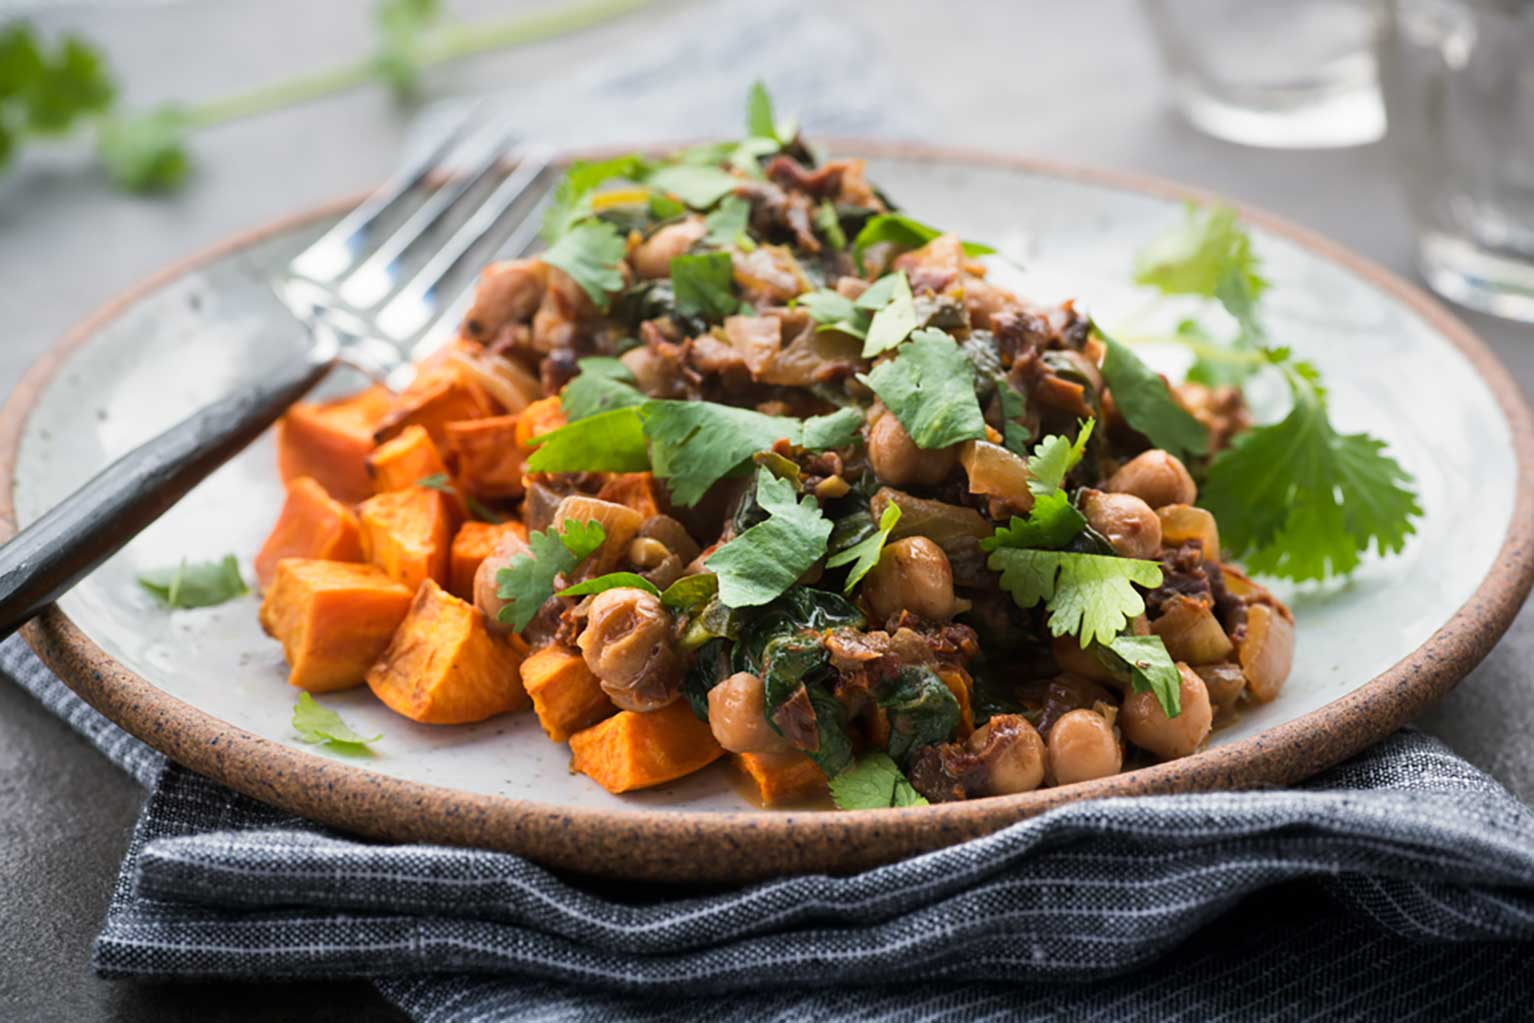 Sweet-potatoes-and-chickpea-meal-topped-with-cilantro-on-a-plate